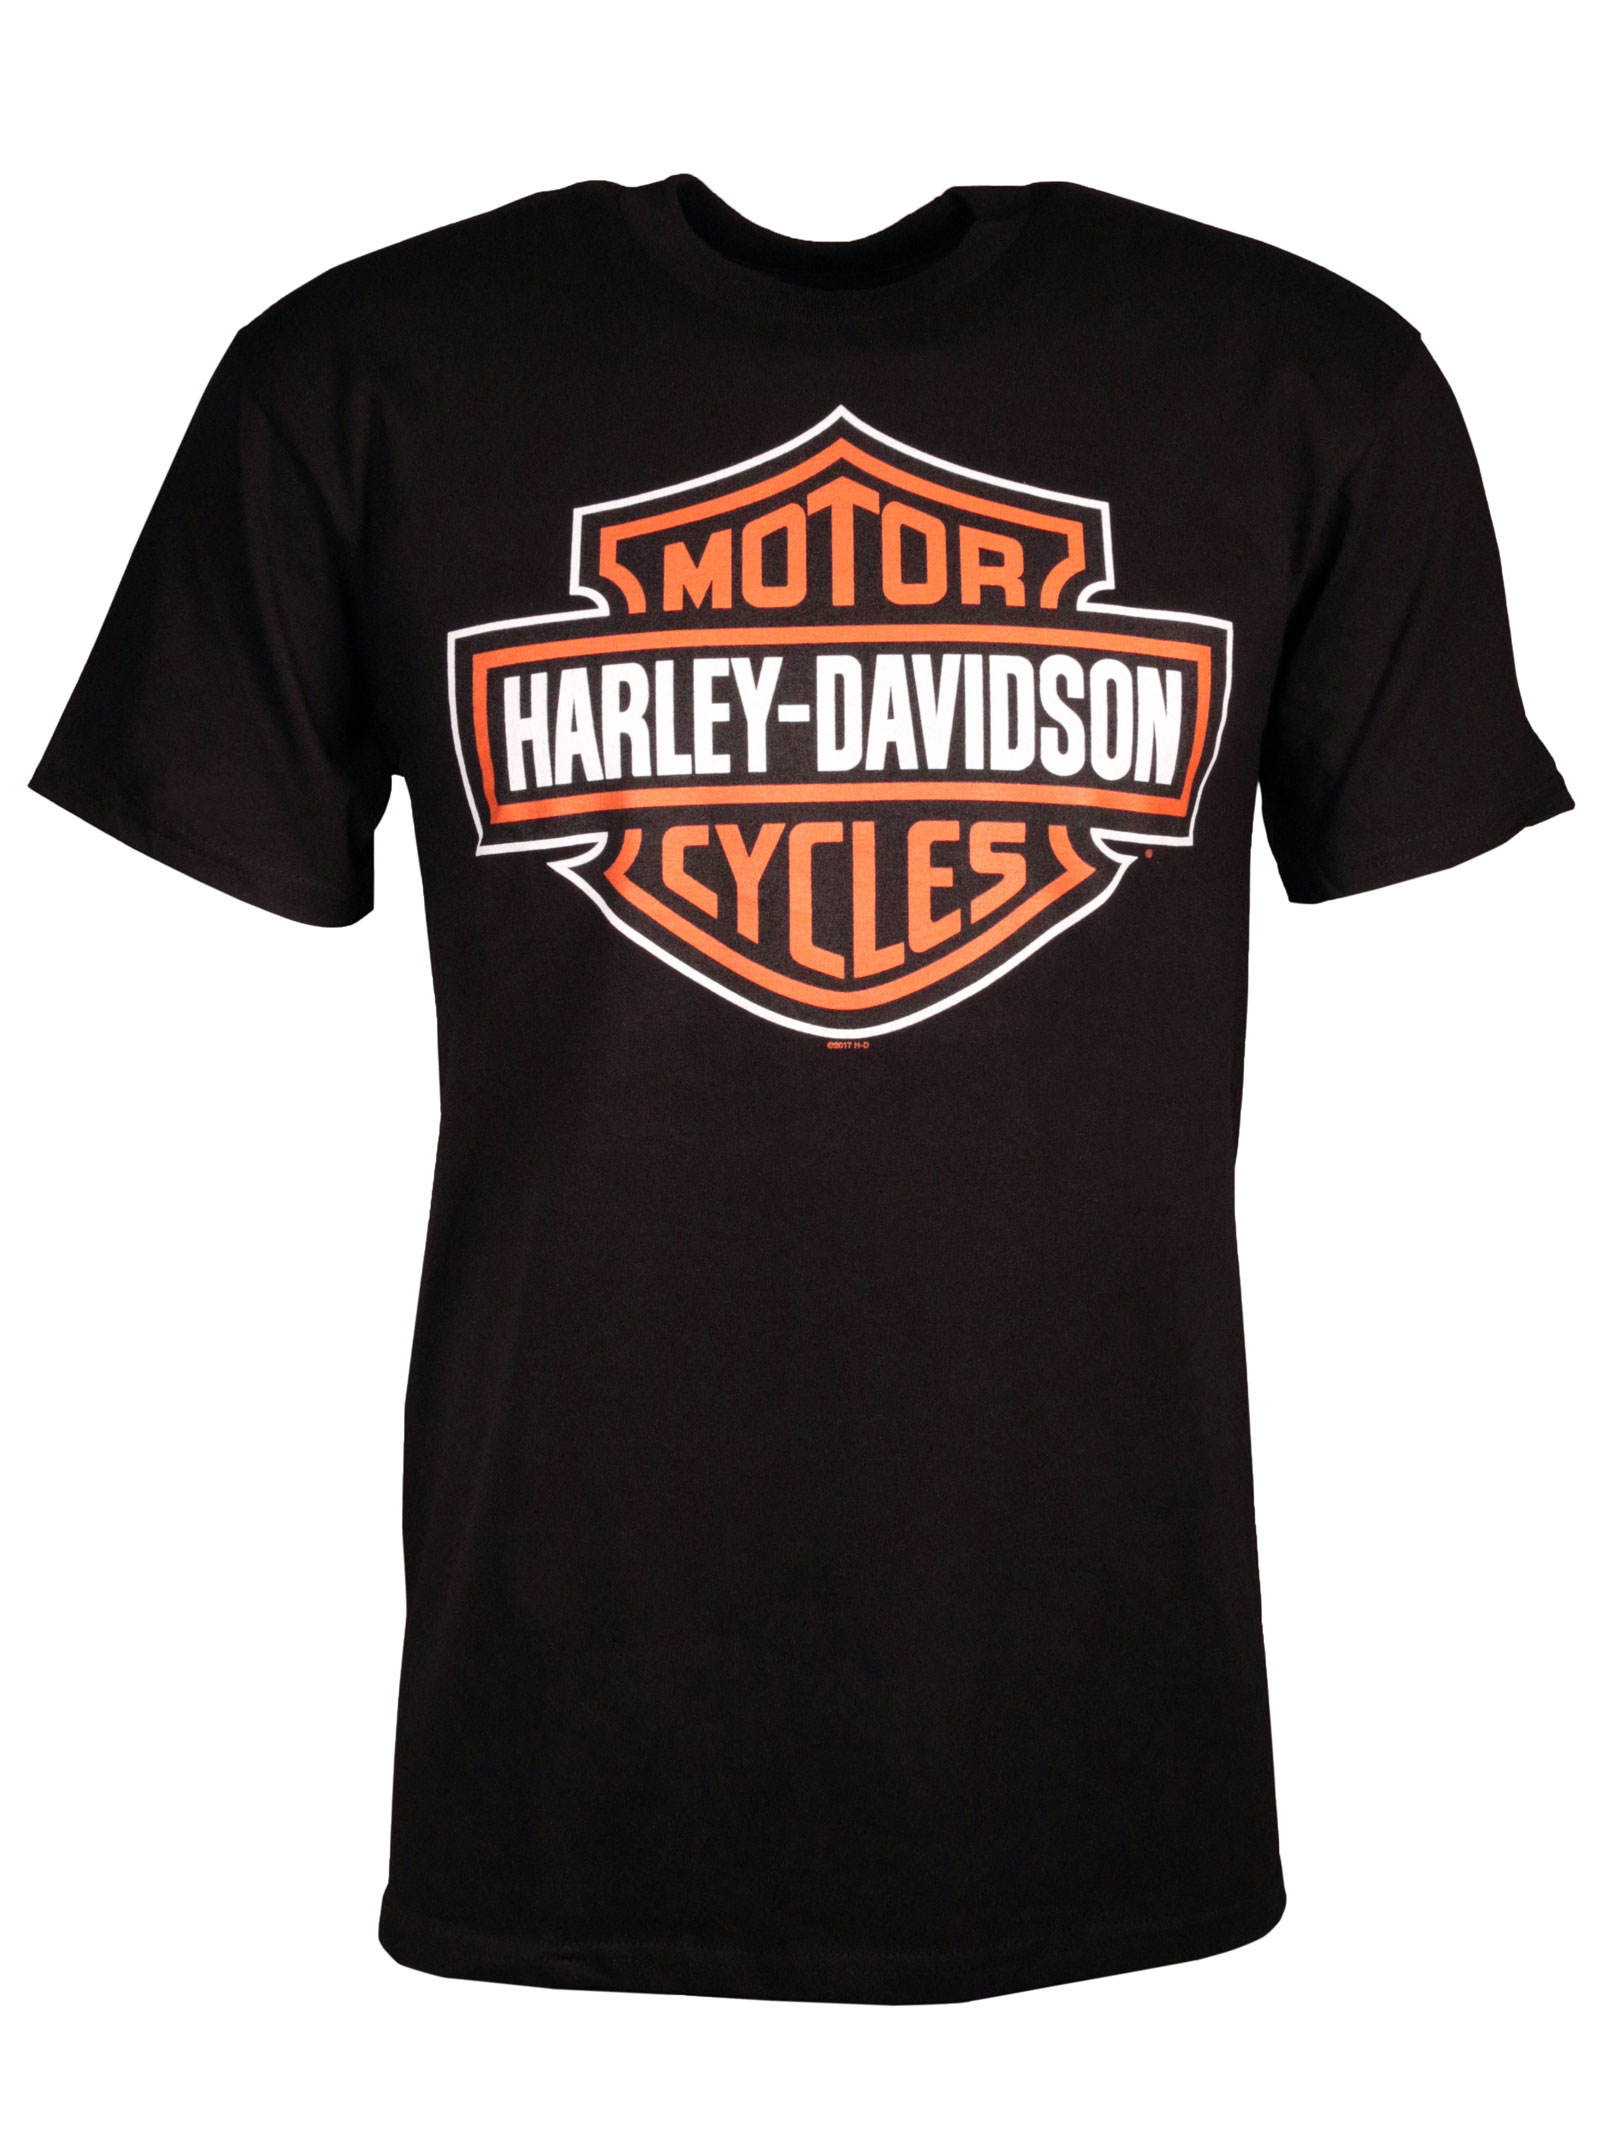 harley davidson t shirt significant bar shield at. Black Bedroom Furniture Sets. Home Design Ideas